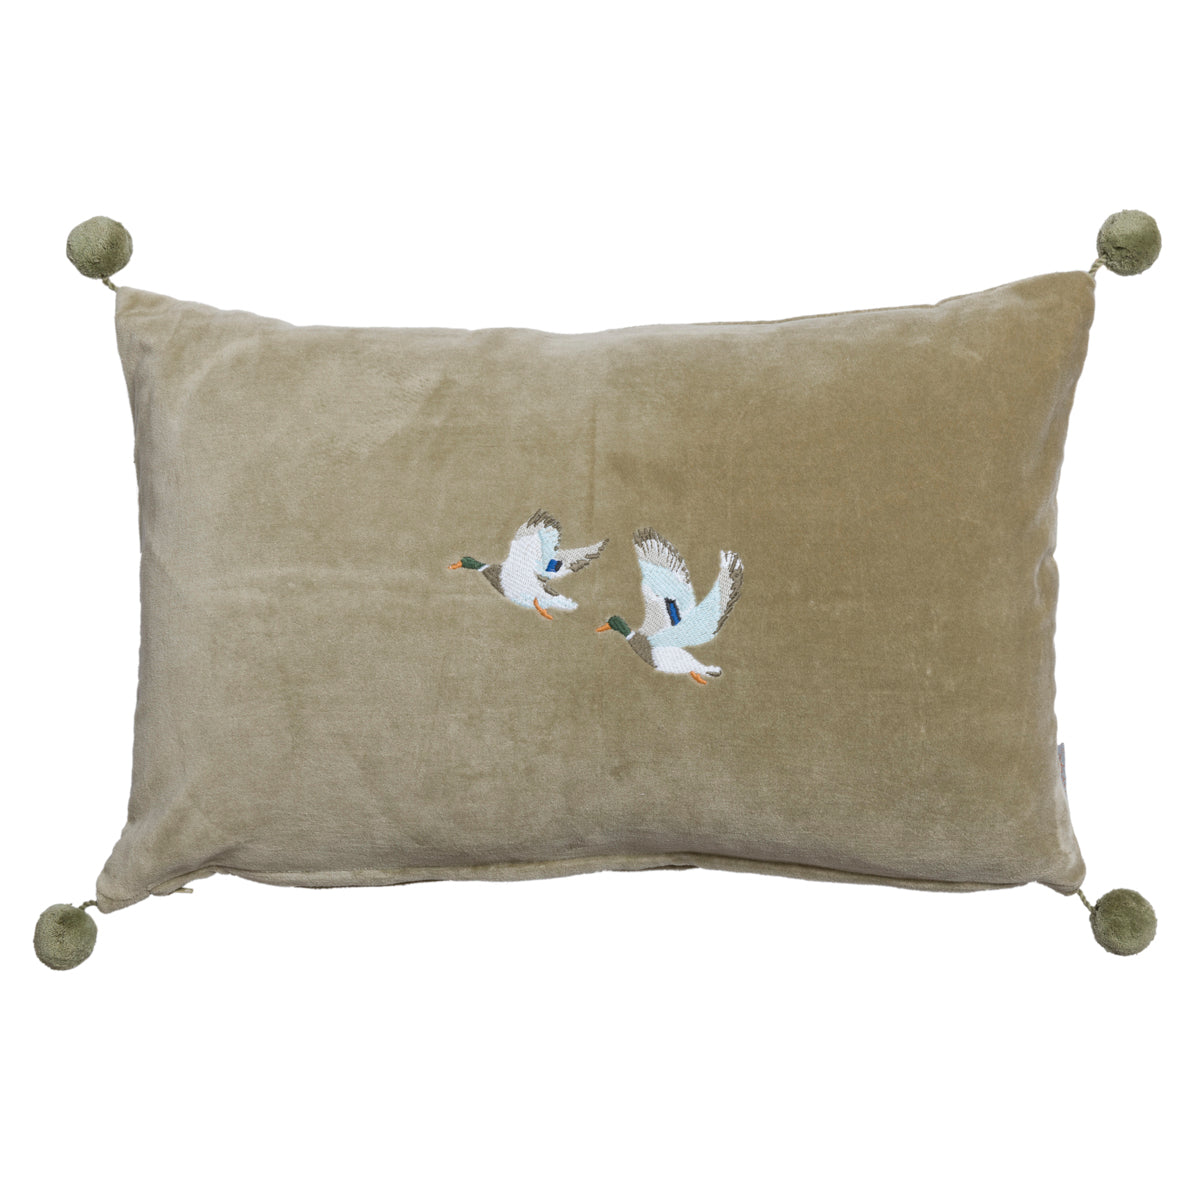 Ducks Embroidered Cushion by Sophie Allport